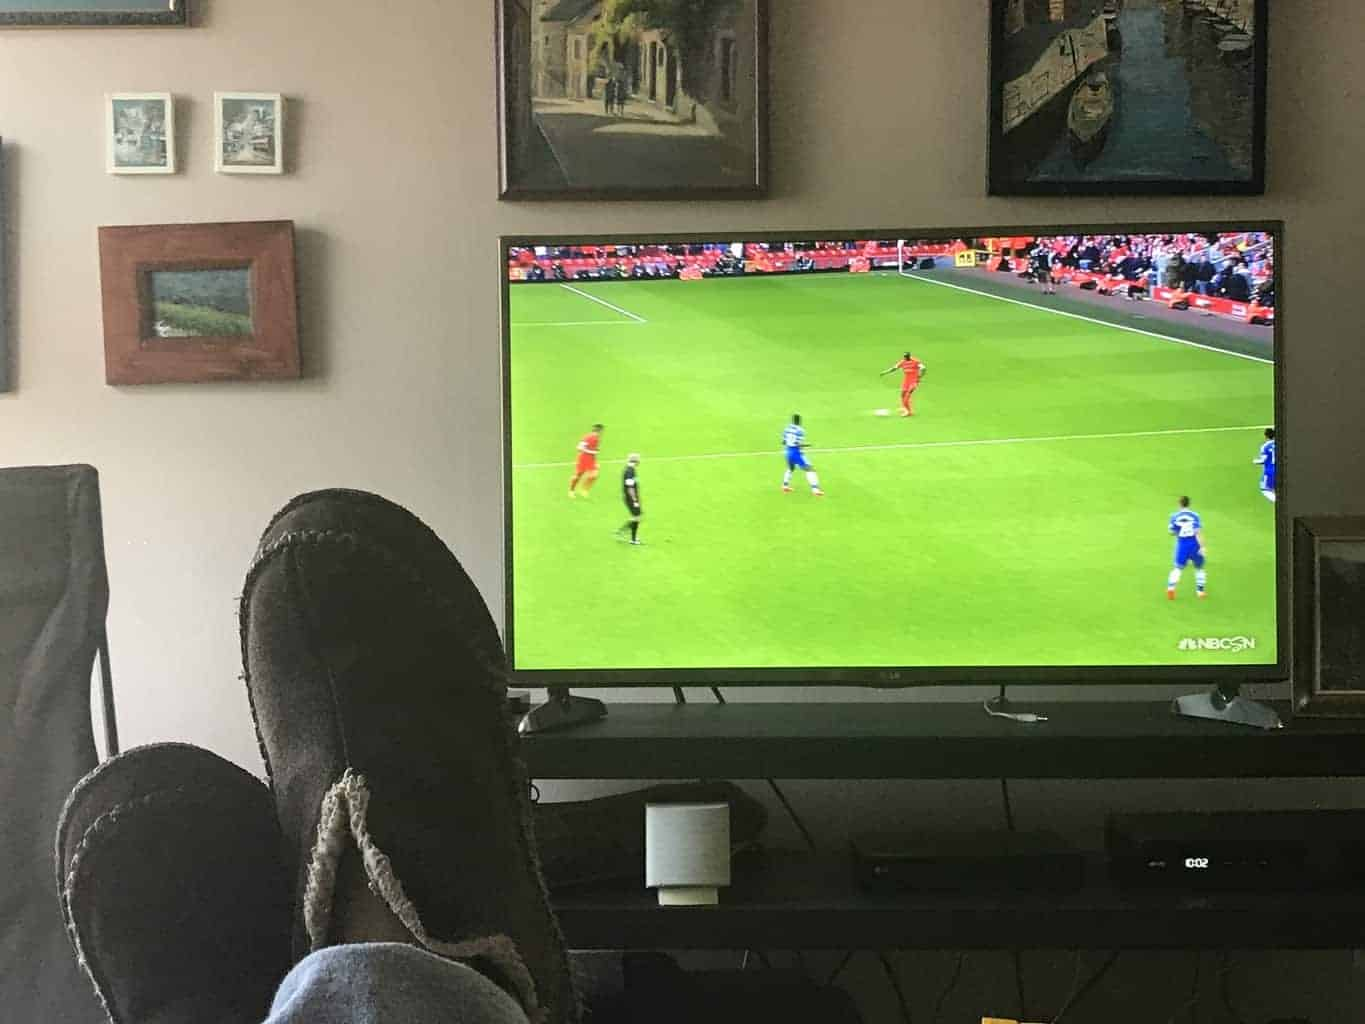 How to Watch English and European Soccer in the U.S.